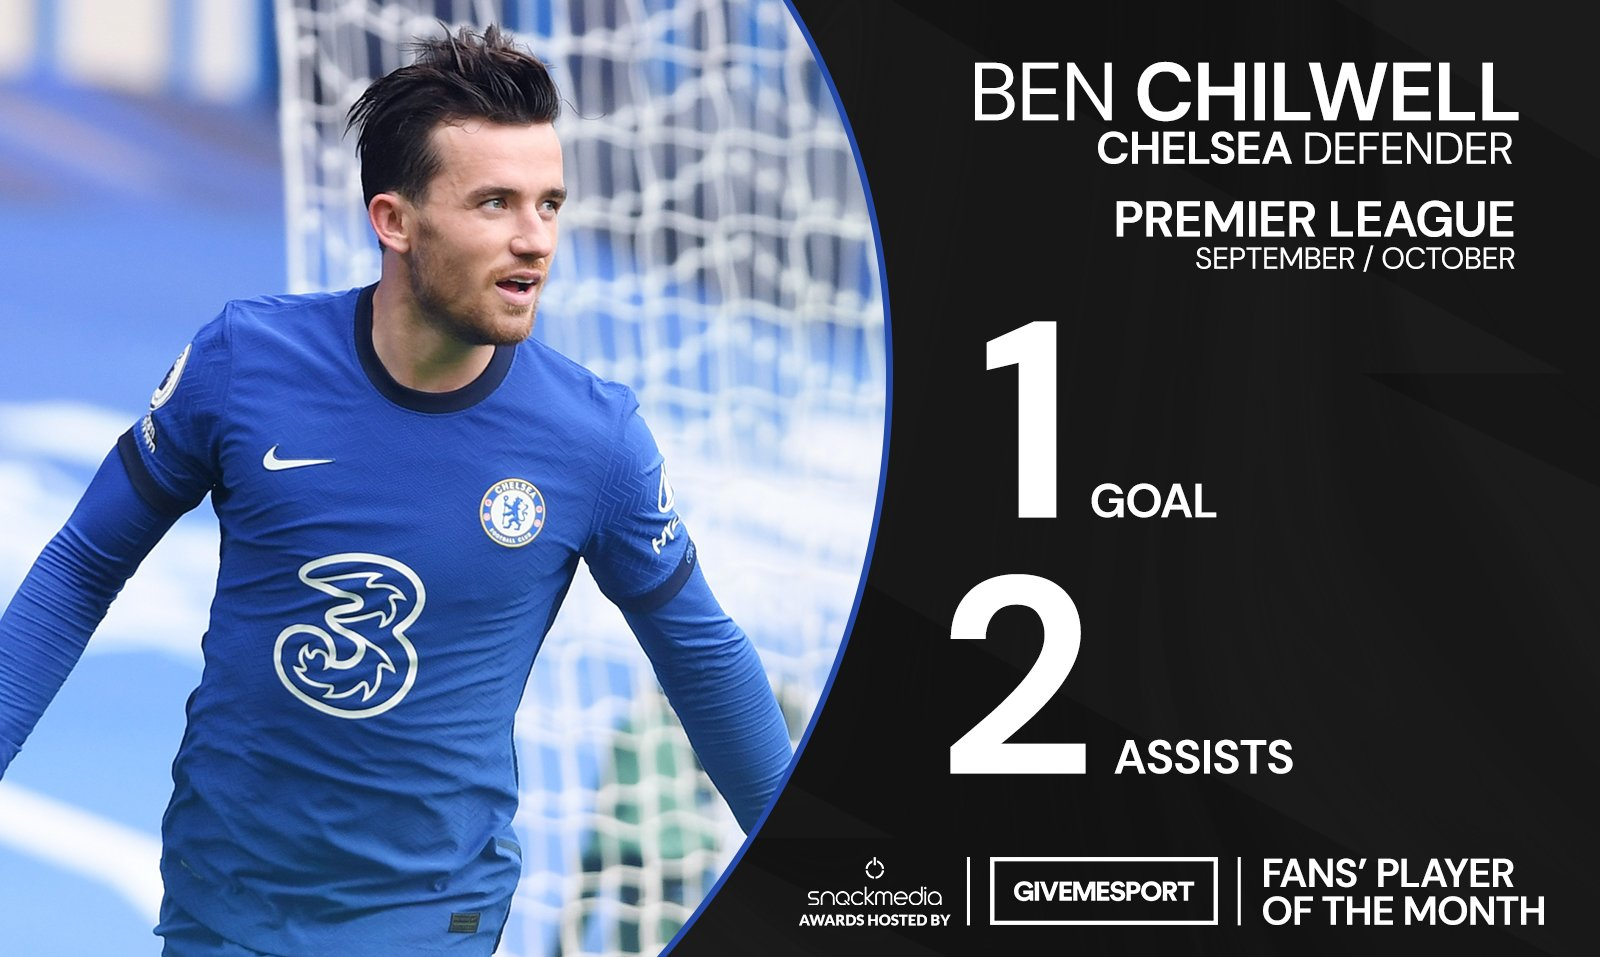 CHLWELLBEN GMS FANS AWARD - Stunning form: Villa, Everton & Spurs stars rise to Premier League's best-in-class for 20/21